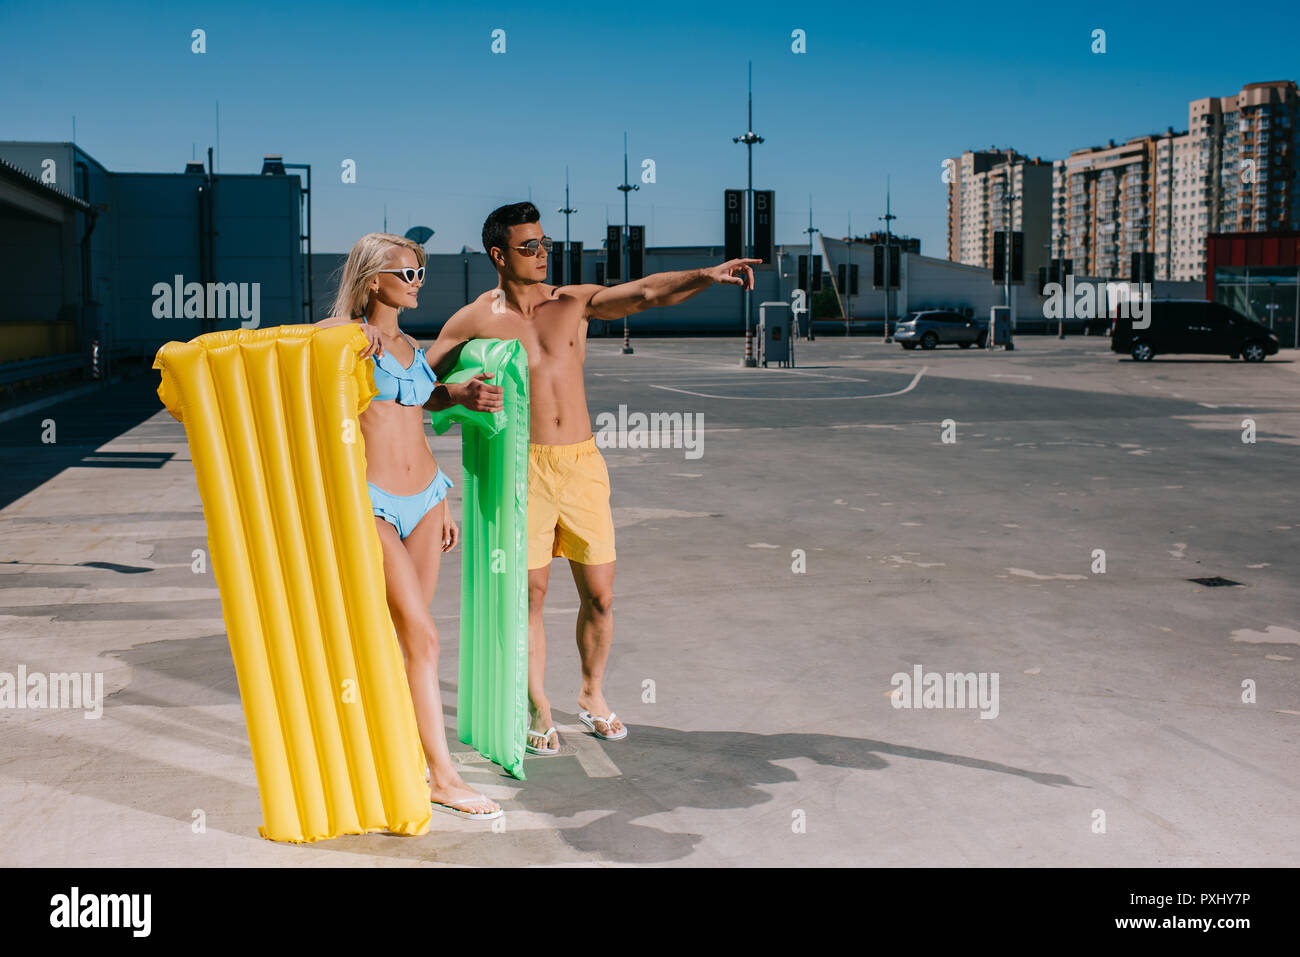 happy young couple in beach clothes with inflatable beds on parking - Stock Image